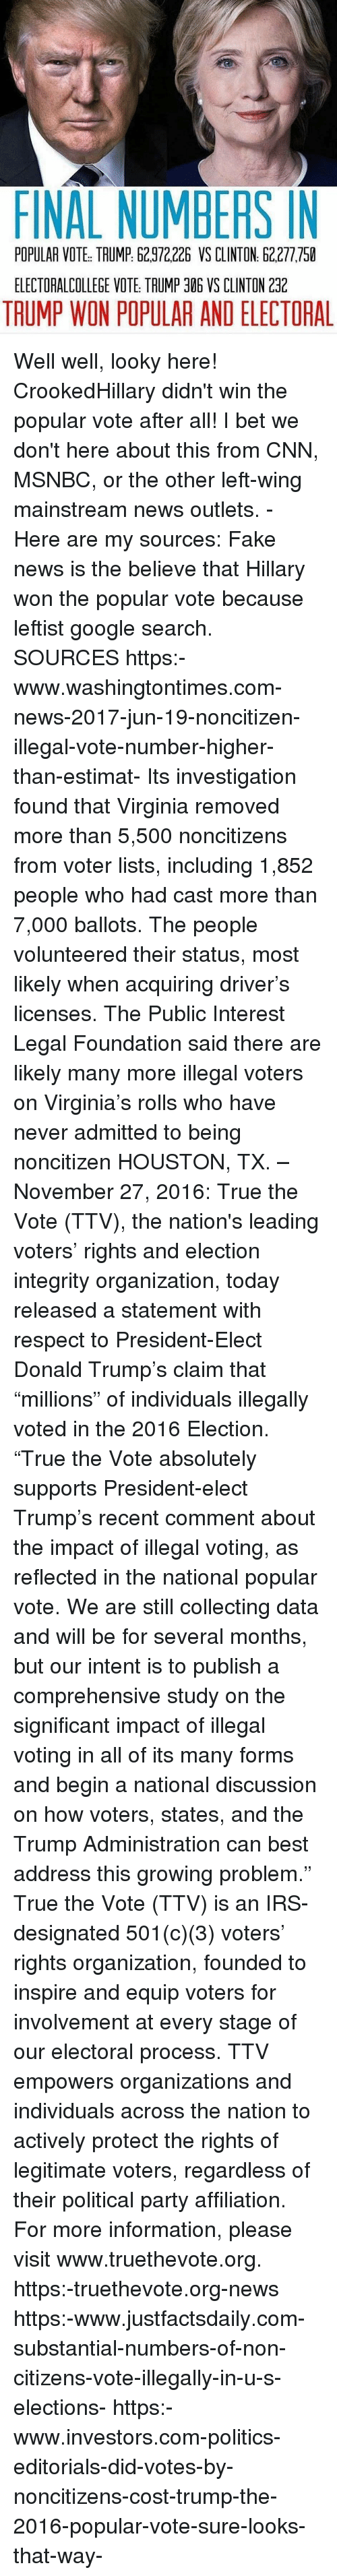 """Msnbc: FINAL NUMBERS IN  POPULAR VOTE TAUMP: 62.972,226 VS CLINTON 62.277,750  ELECTORALCOLLEGE VOTE TRUMP 306 VS CLINTON 2312  TAUMP WON POPULAR AND ELECTORAL Well well, looky here! CrookedHillary didn't win the popular vote after all! I bet we don't here about this from CNN, MSNBC, or the other left-wing mainstream news outlets. - Here are my sources: Fake news is the believe that Hillary won the popular vote because leftist google search. SOURCES https:-www.washingtontimes.com-news-2017-jun-19-noncitizen-illegal-vote-number-higher-than-estimat- Its investigation found that Virginia removed more than 5,500 noncitizens from voter lists, including 1,852 people who had cast more than 7,000 ballots. The people volunteered their status, most likely when acquiring driver's licenses. The Public Interest Legal Foundation said there are likely many more illegal voters on Virginia's rolls who have never admitted to being noncitizen HOUSTON, TX. – November 27, 2016: True the Vote (TTV), the nation's leading voters' rights and election integrity organization, today released a statement with respect to President-Elect Donald Trump's claim that """"millions"""" of individuals illegally voted in the 2016 Election. """"True the Vote absolutely supports President-elect Trump's recent comment about the impact of illegal voting, as reflected in the national popular vote. We are still collecting data and will be for several months, but our intent is to publish a comprehensive study on the significant impact of illegal voting in all of its many forms and begin a national discussion on how voters, states, and the Trump Administration can best address this growing problem."""" True the Vote (TTV) is an IRS-designated 501(c)(3) voters' rights organization, founded to inspire and equip voters for involvement at every stage of our electoral process. TTV empowers organizations and individuals across the nation to actively protect the rights of legitimate voters, regardless of their political party affi"""